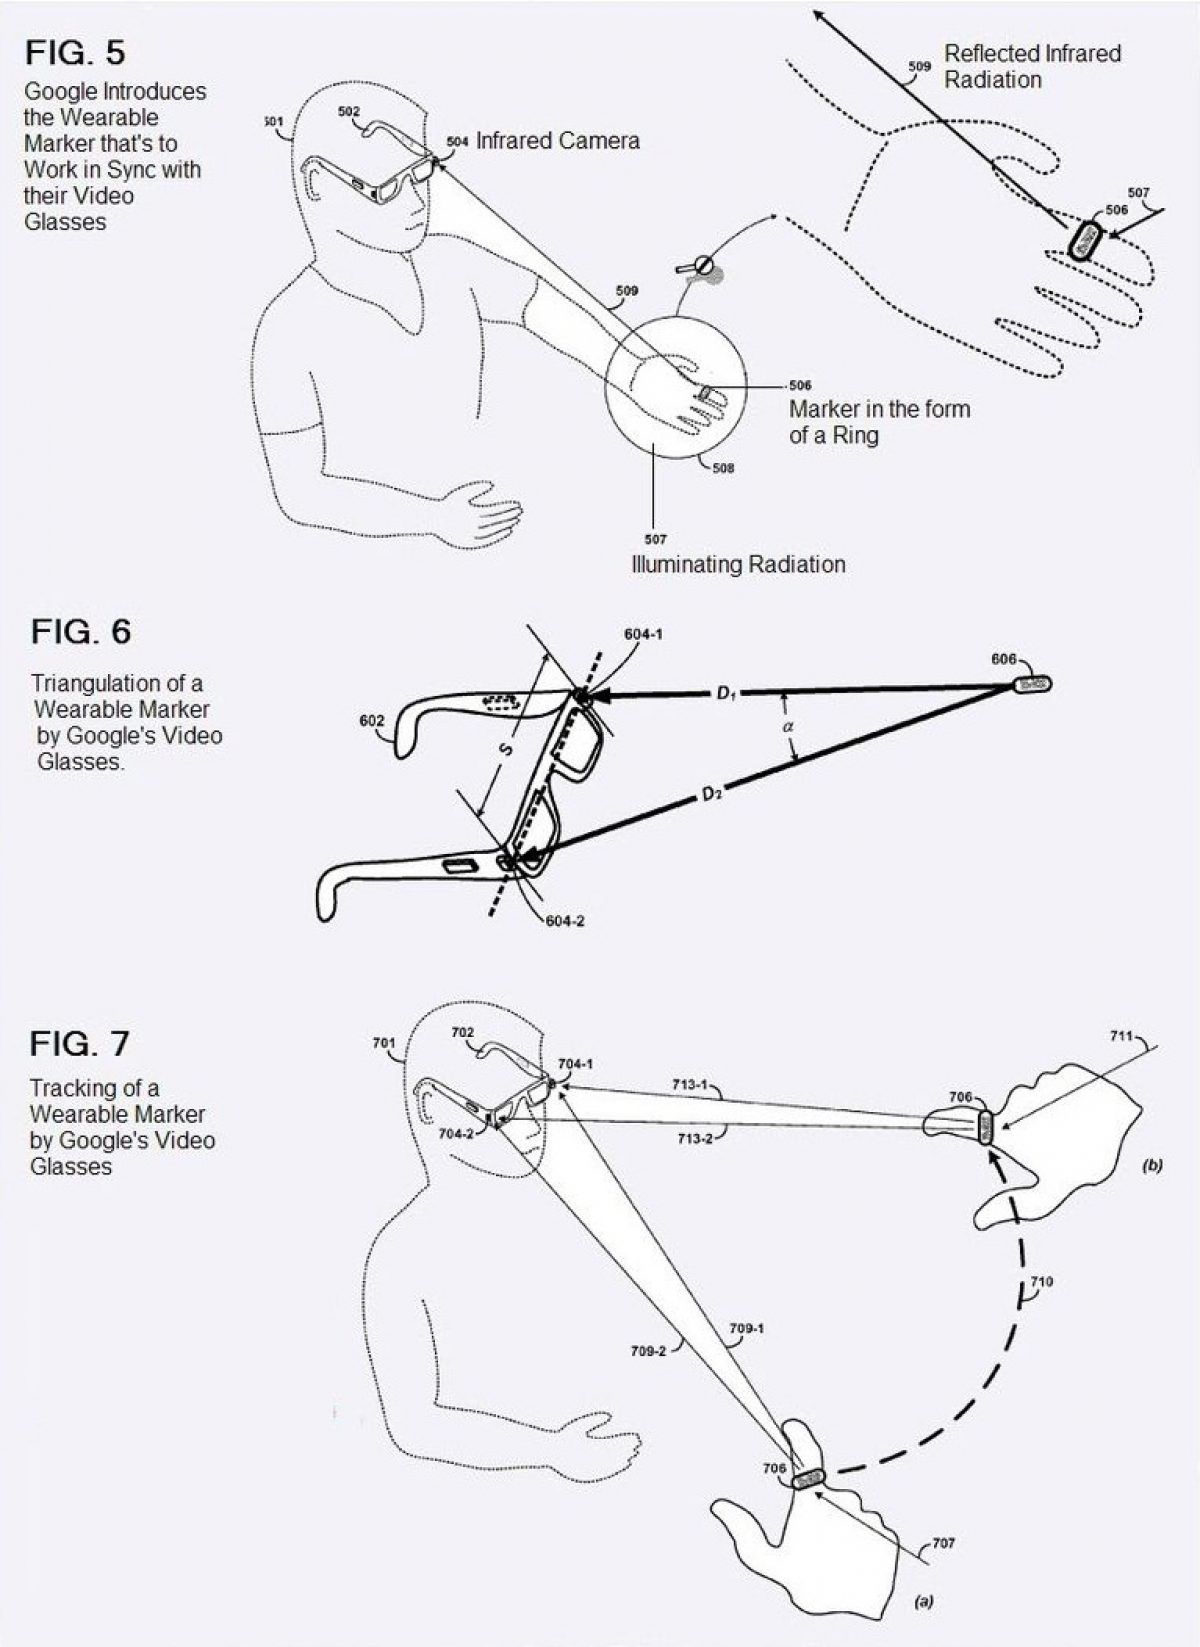 Project Glass to Incorporate the Use of Gesture-Based